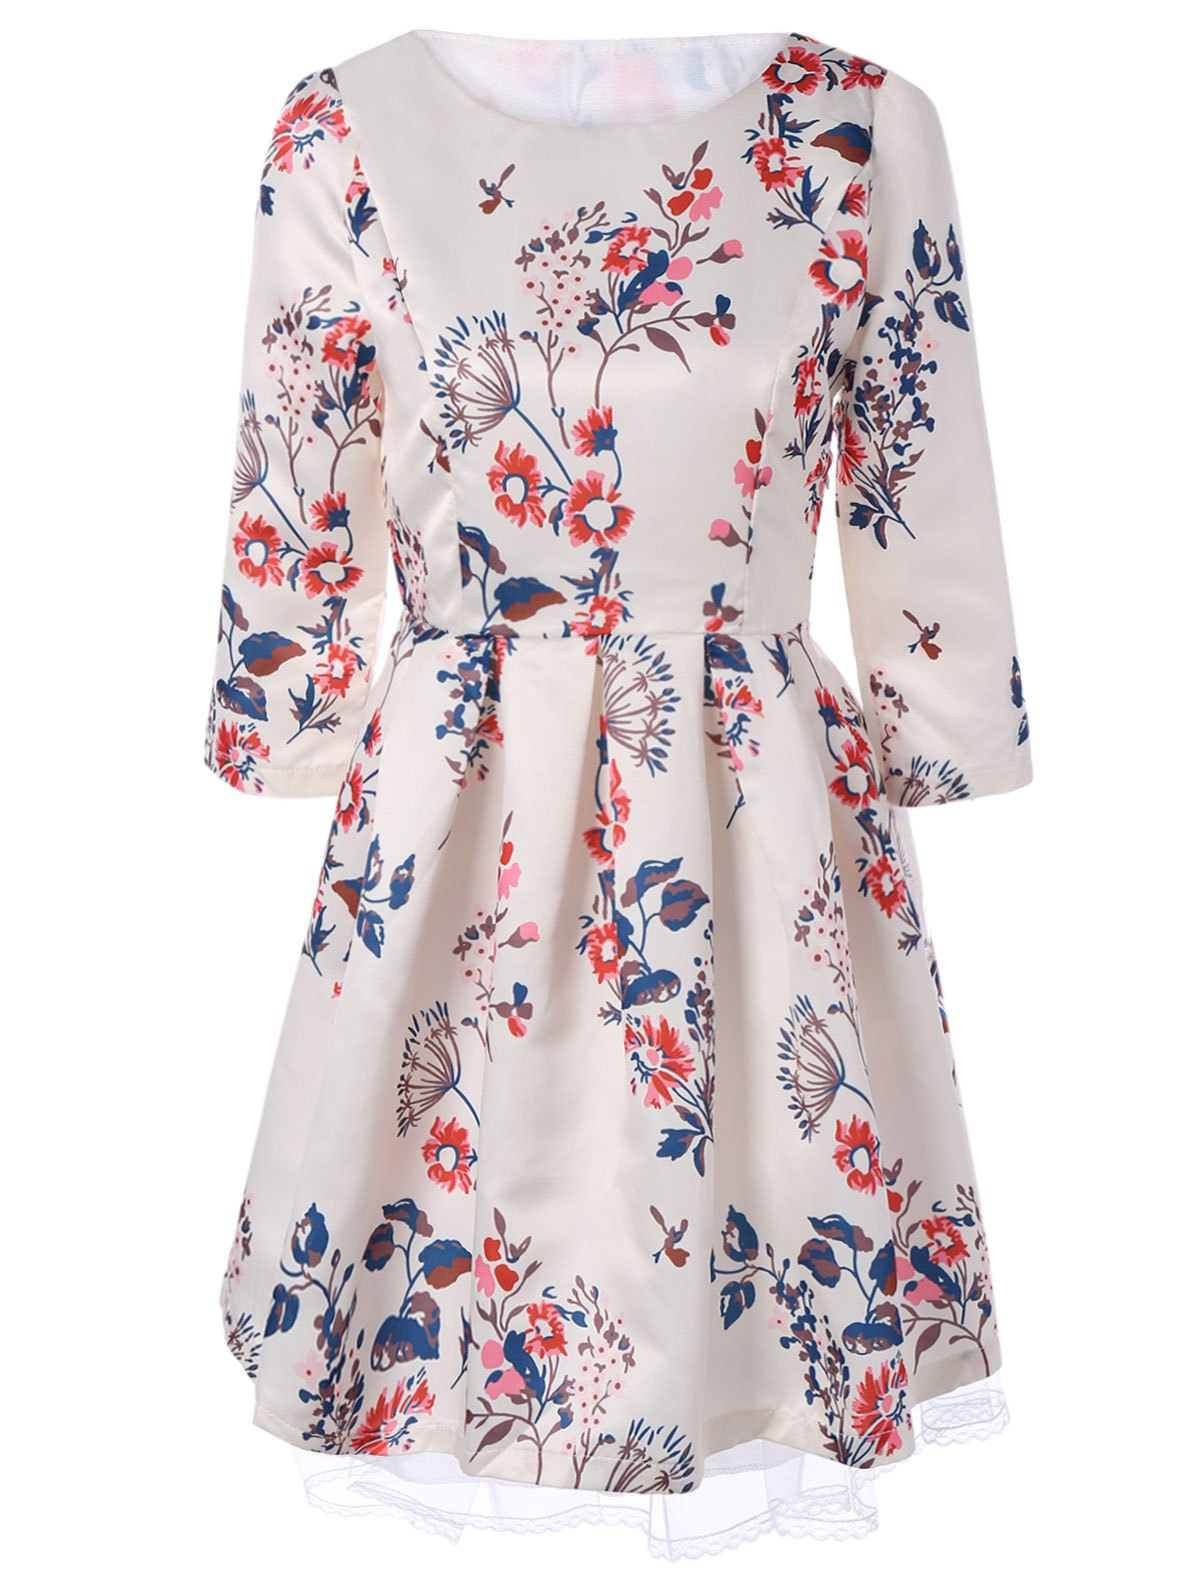 Retro Round Neck Floral Printed 3/4 Sleeve Fit and Flare Dress - APRICOT XL